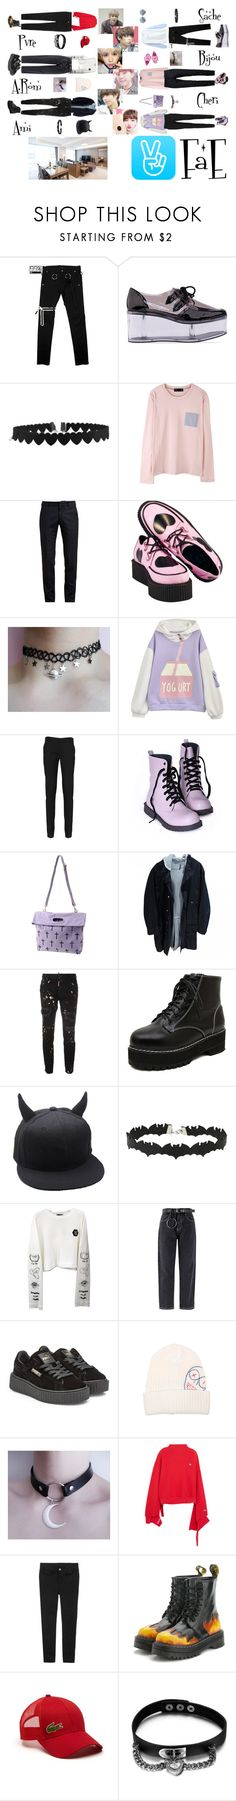 """""""✨ Sibling V-App I ✨ Outfits ✨"""" by fae-official ❤ liked on Polyvore featuring Y.R.U., Kiss the Sky, Alexander McQueen, T.U.K., Uniform Union, Christian Dior, Dsquared2, Miss Selfridge, Puma and Vivienne Westwood Man"""